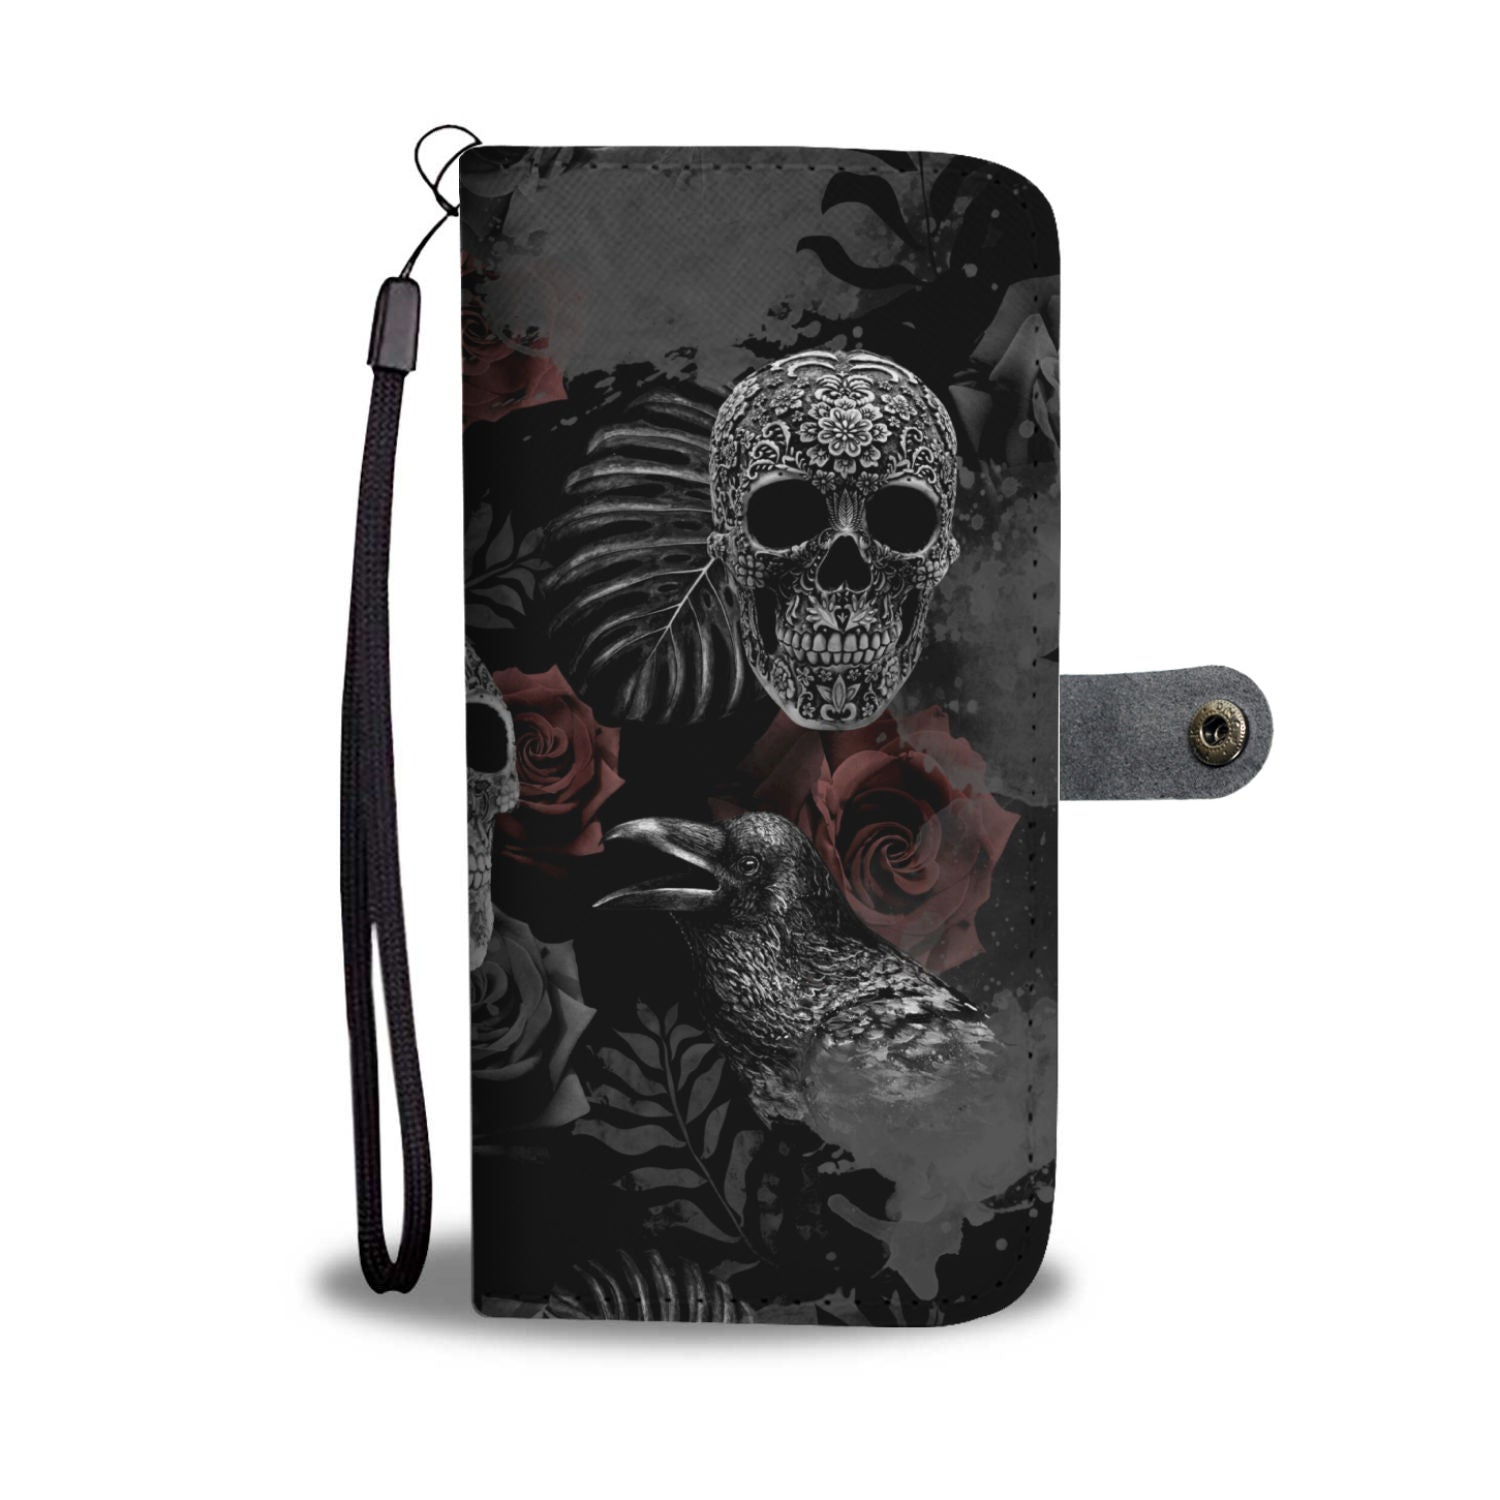 Skulls and Roses Phone Wallet Case - 70+ Phone Models Supported